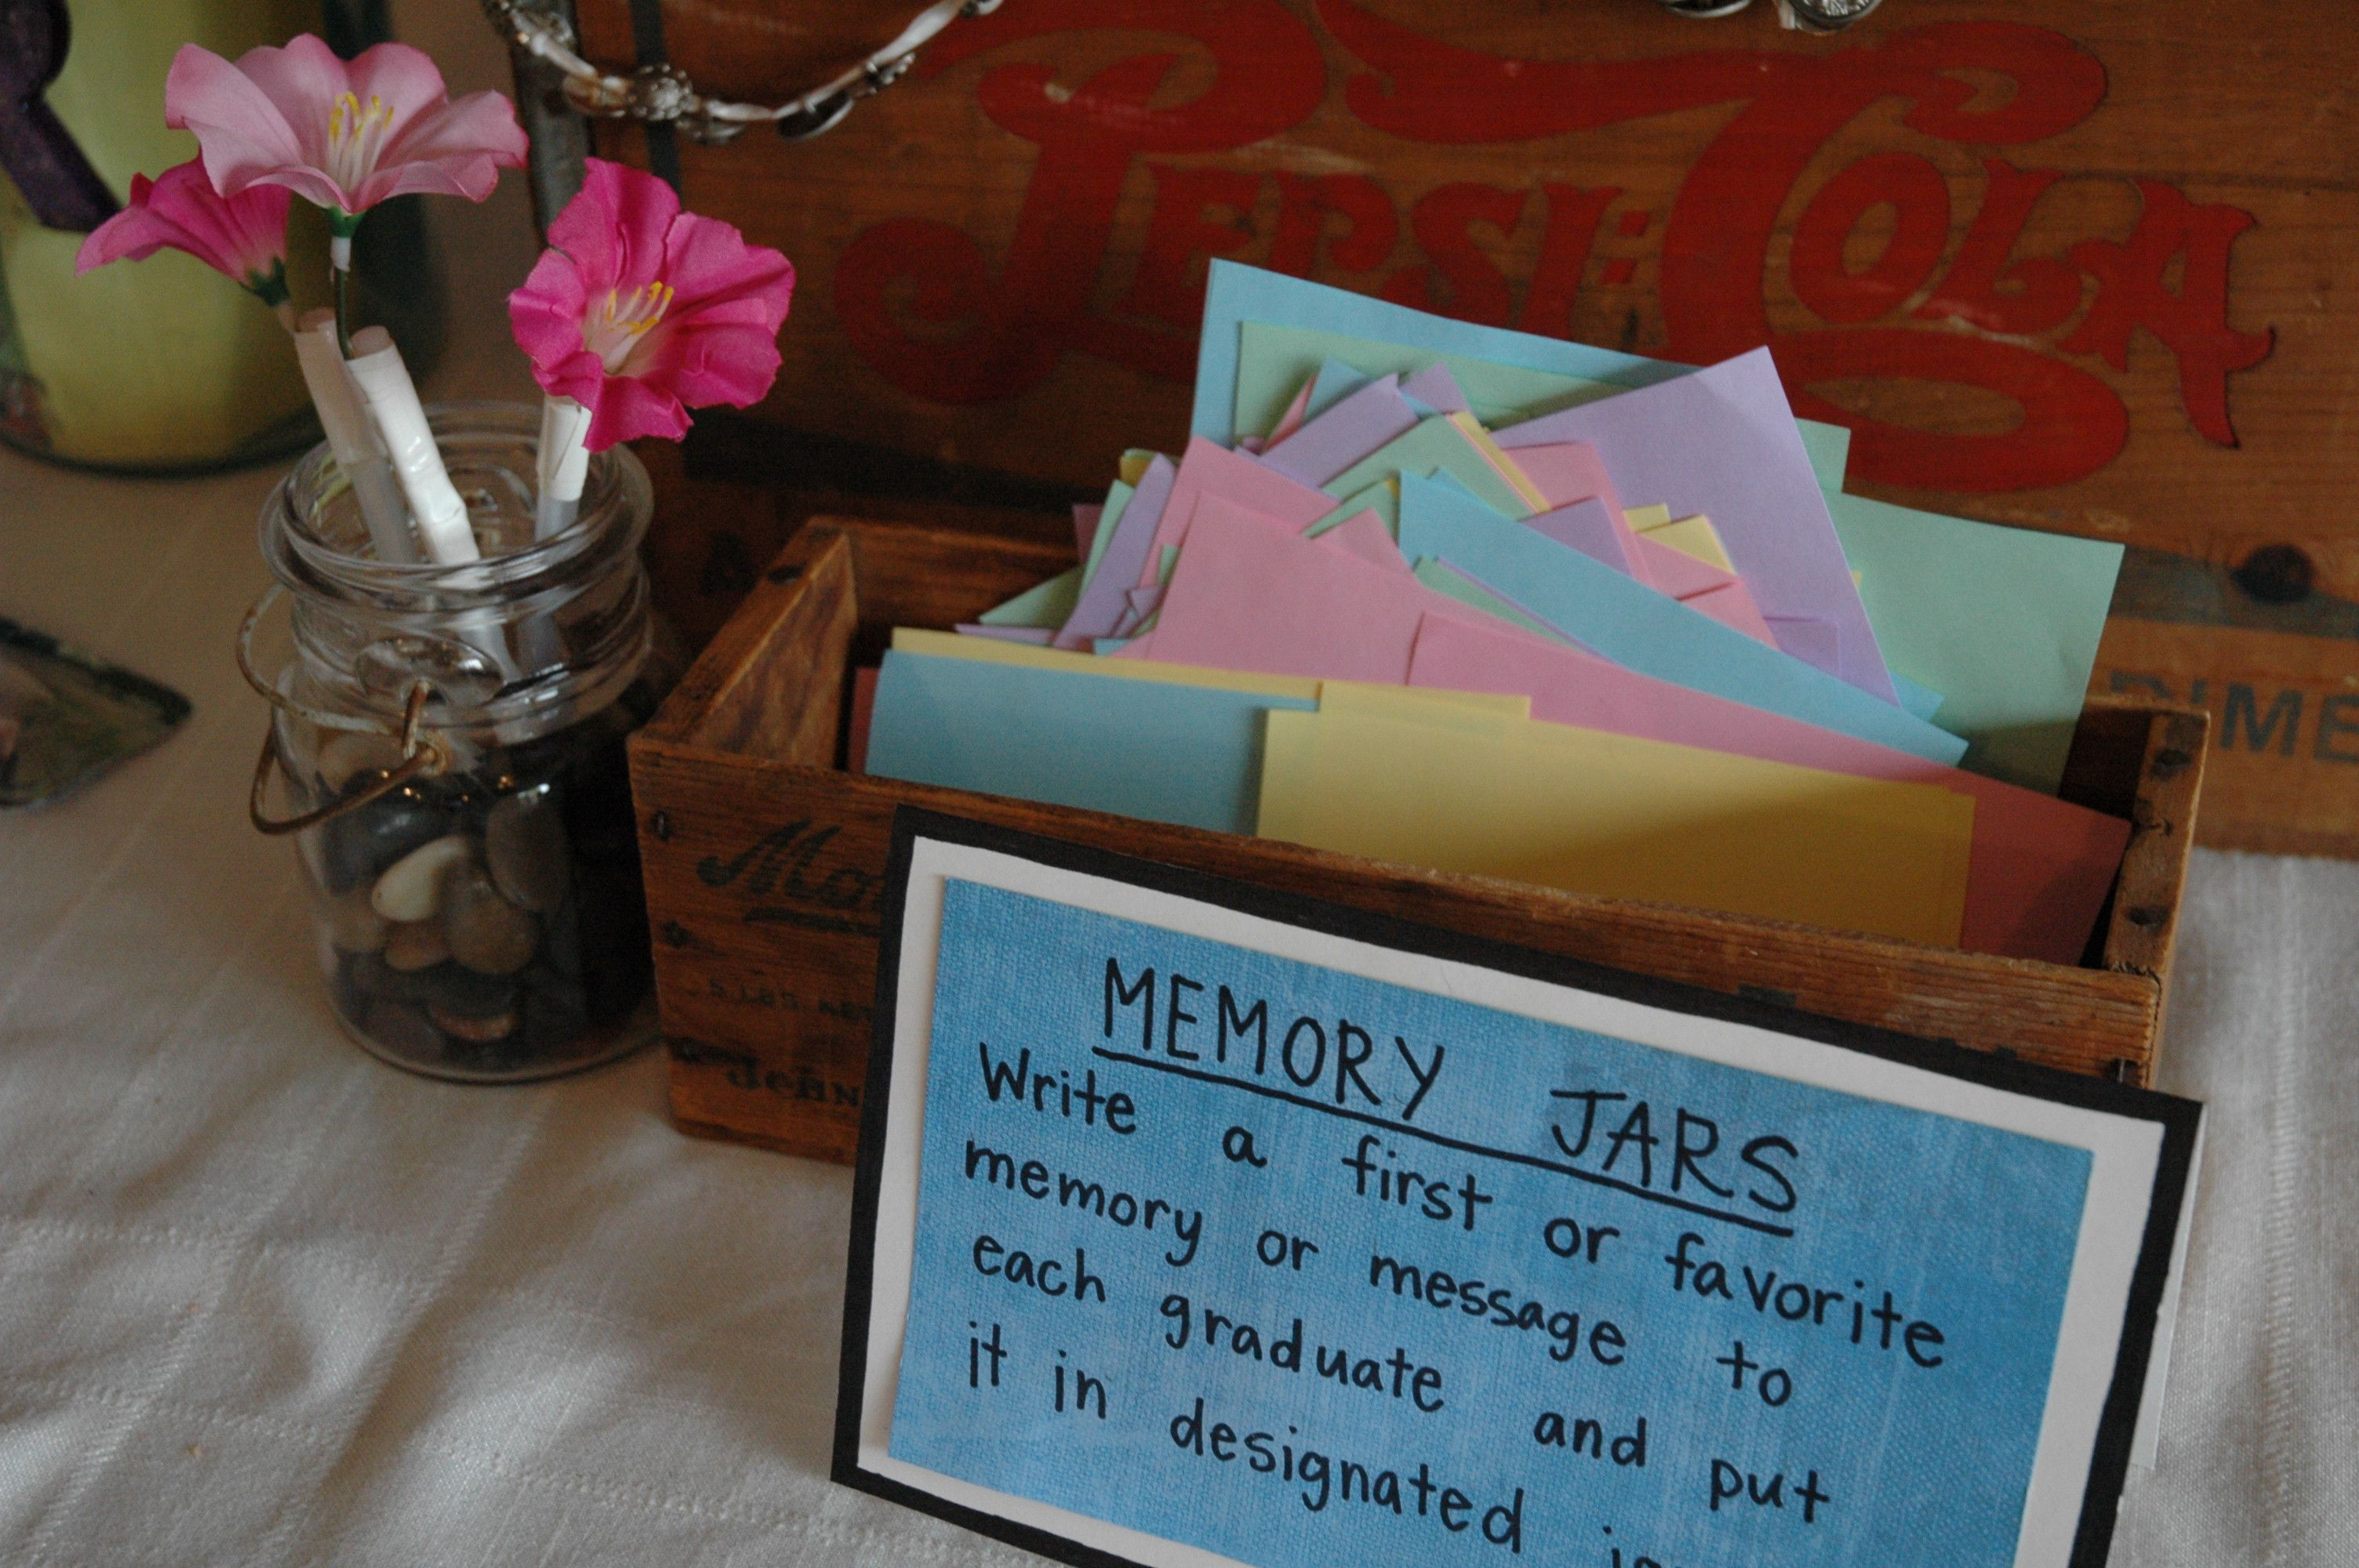 Pin By Ally Anderson On Graduation Party Memory Jar Graduation Graduation Party Memory Jar Graduation Party Memory Ideas